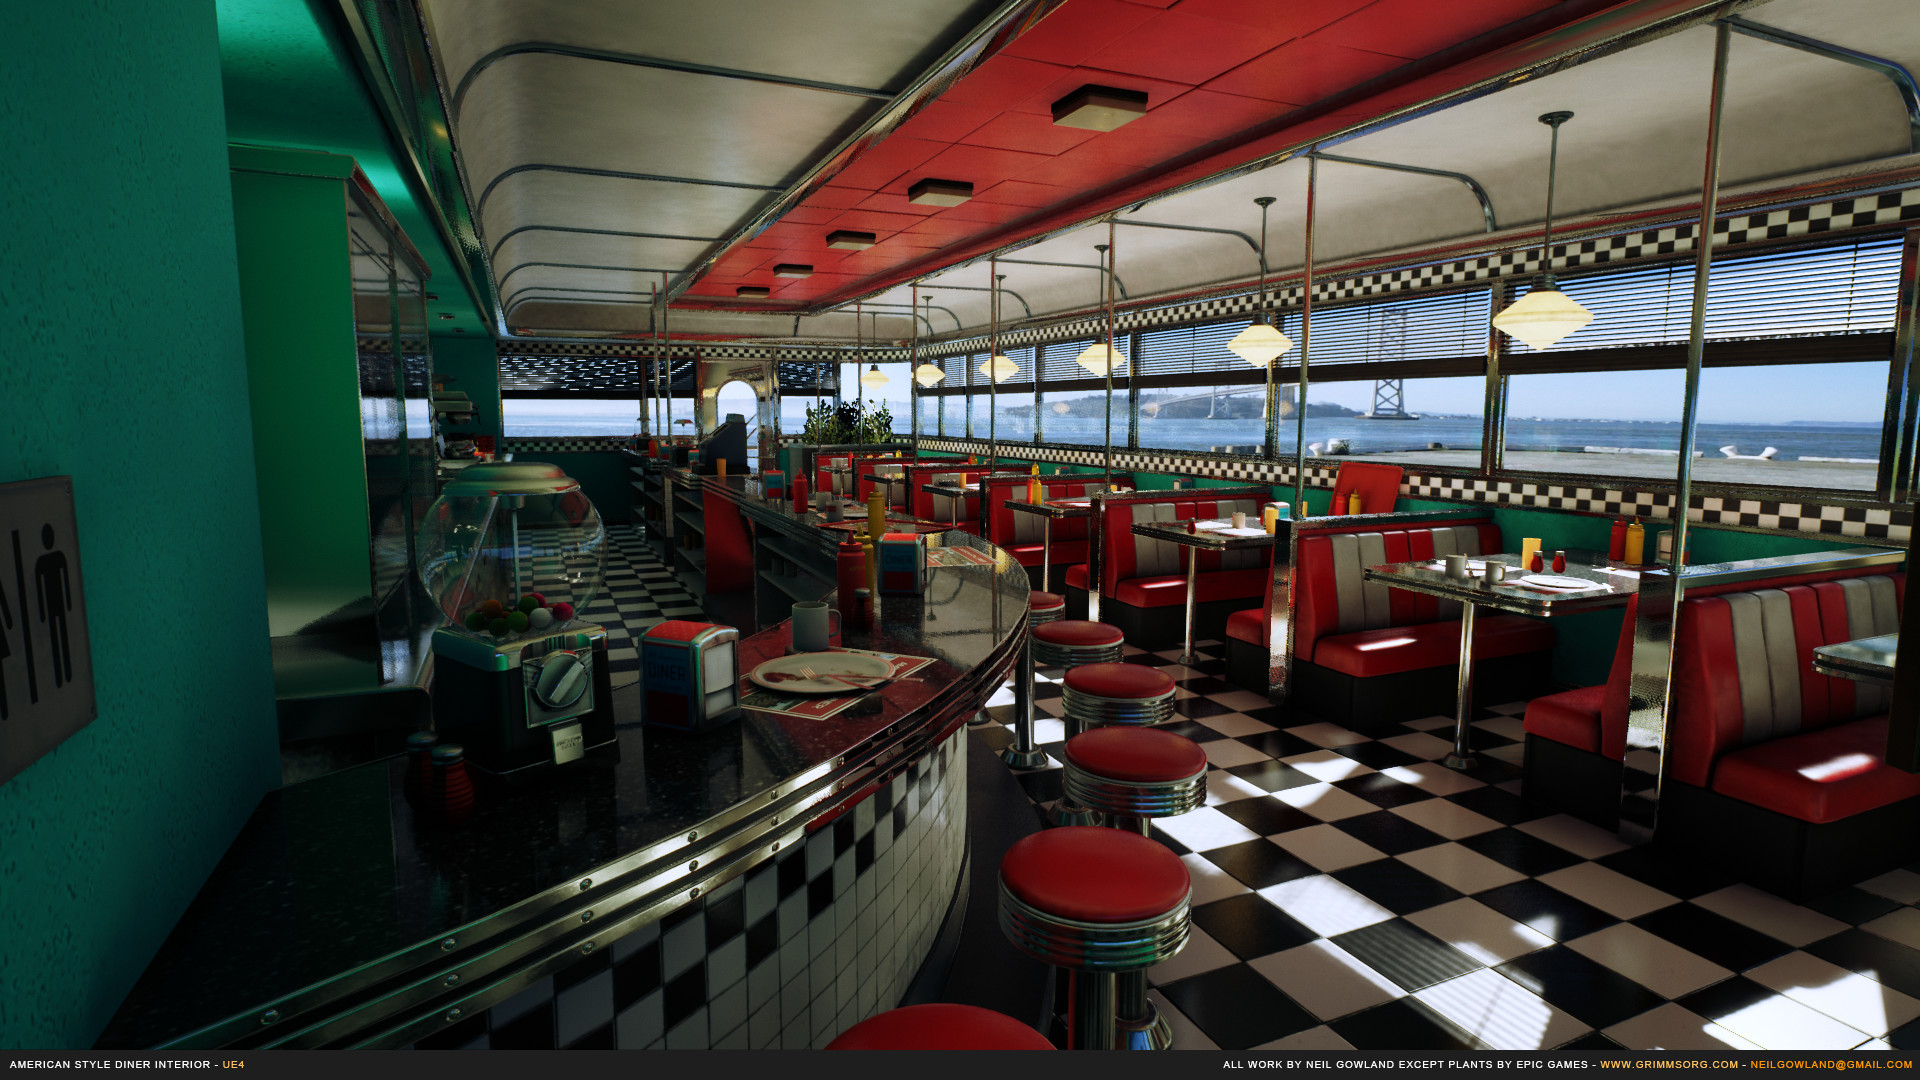 Neil gowland americanstylediner screenshot 03